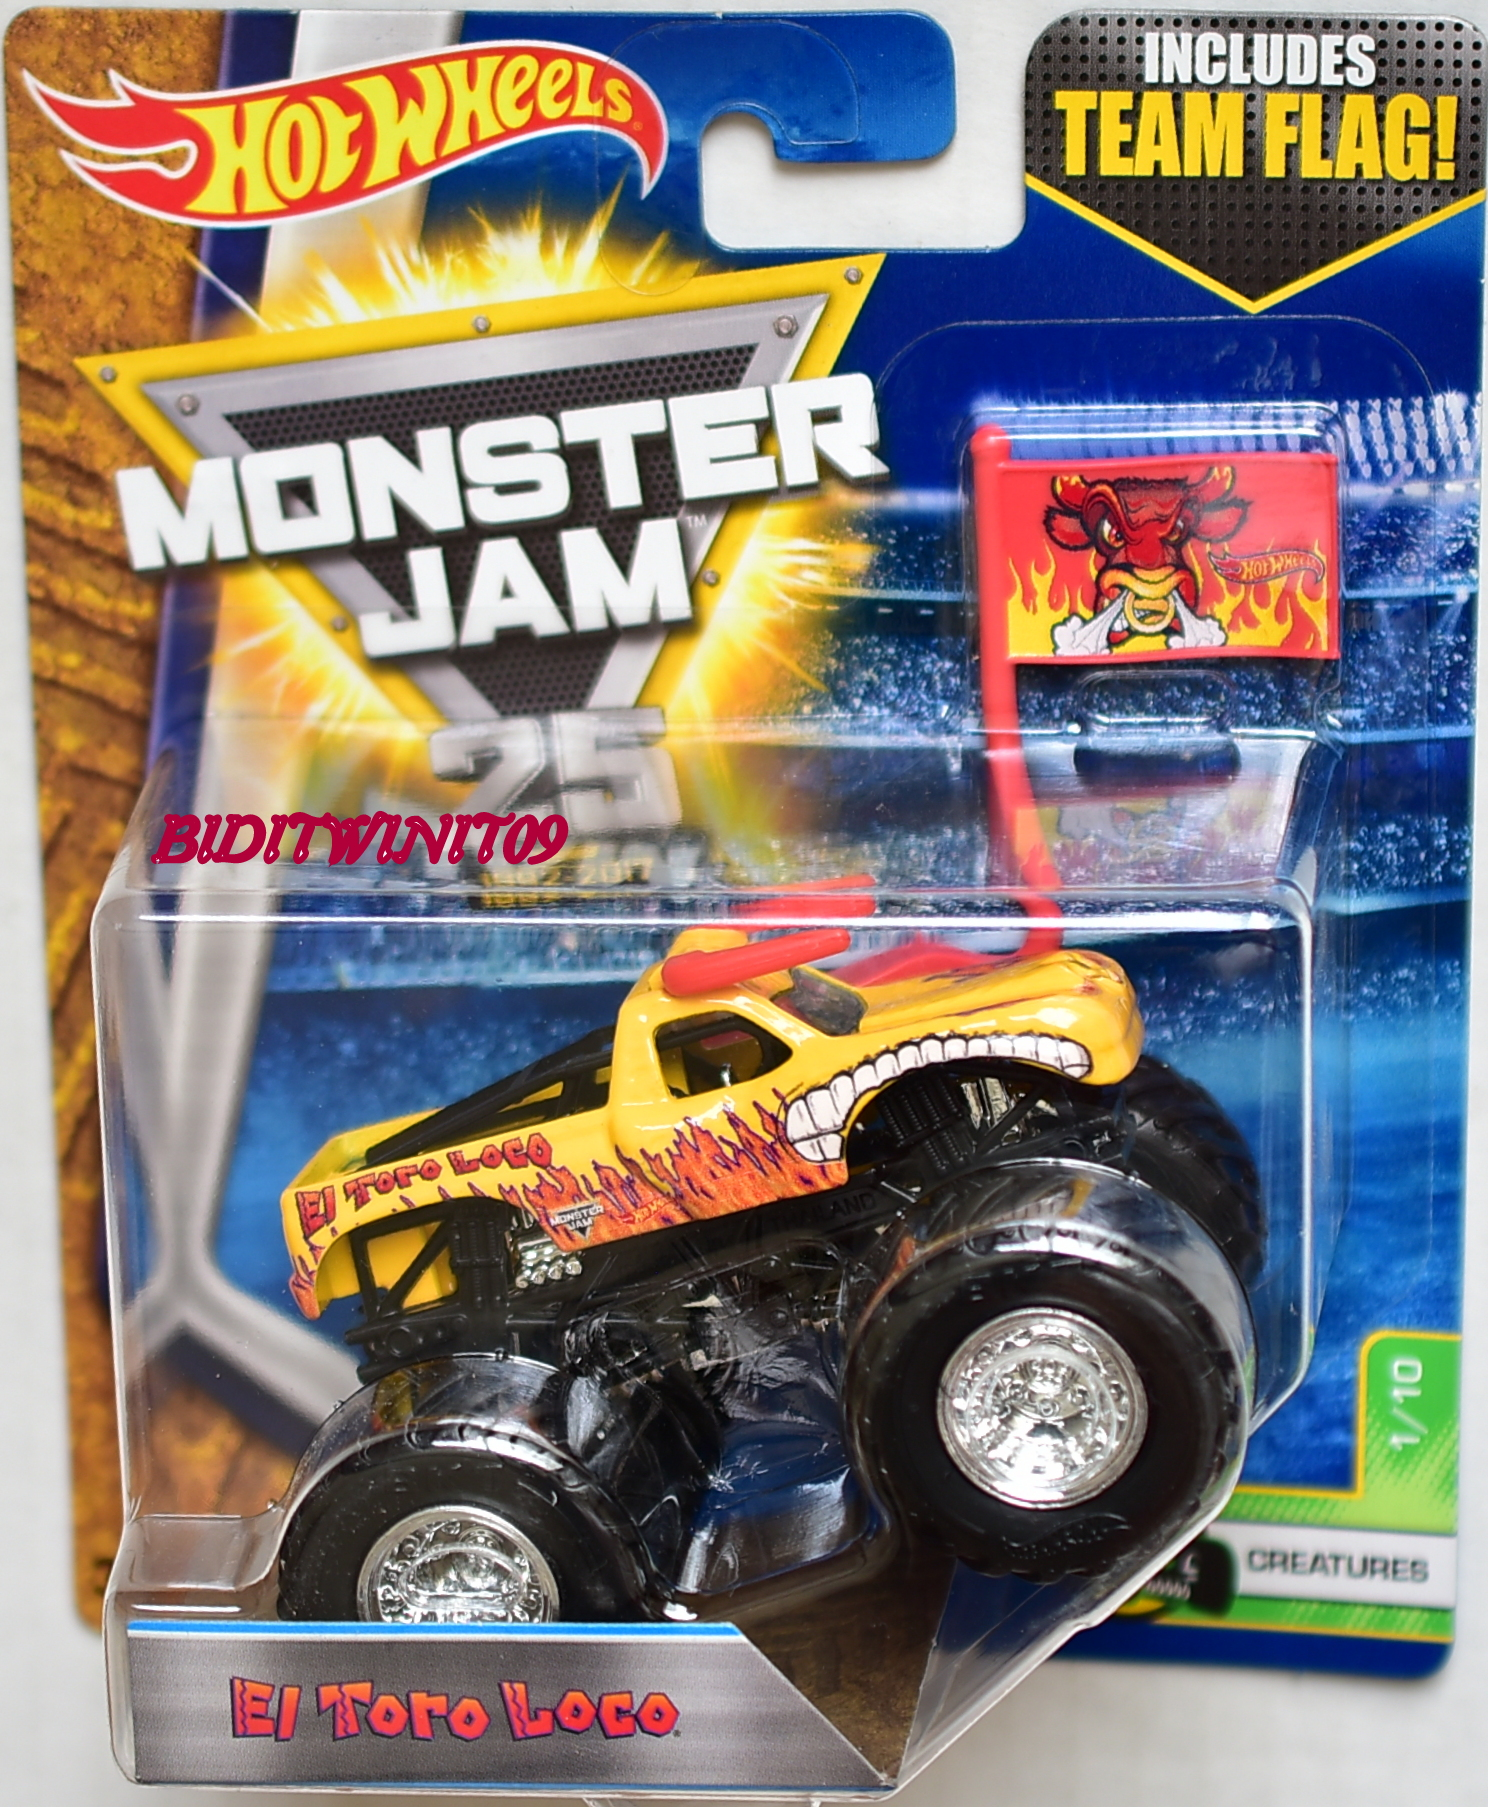 HOT WHEELS 2017 MONSTER JAM INCLUDES TEAM FLAG EL TORO LOCO CREATURES